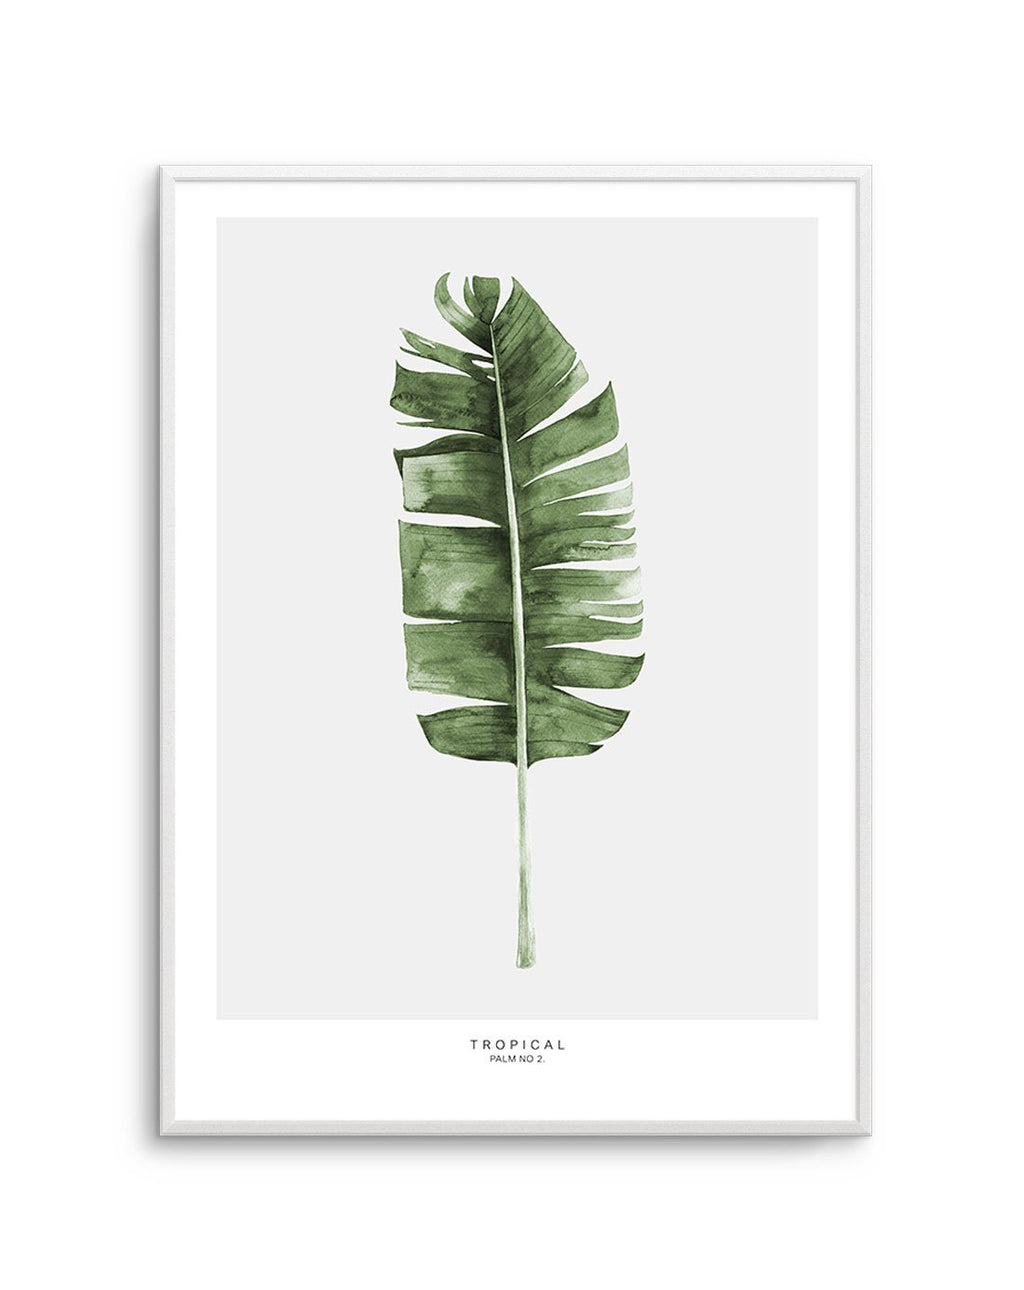 Tropical Palm NO 2 - Olive et Oriel